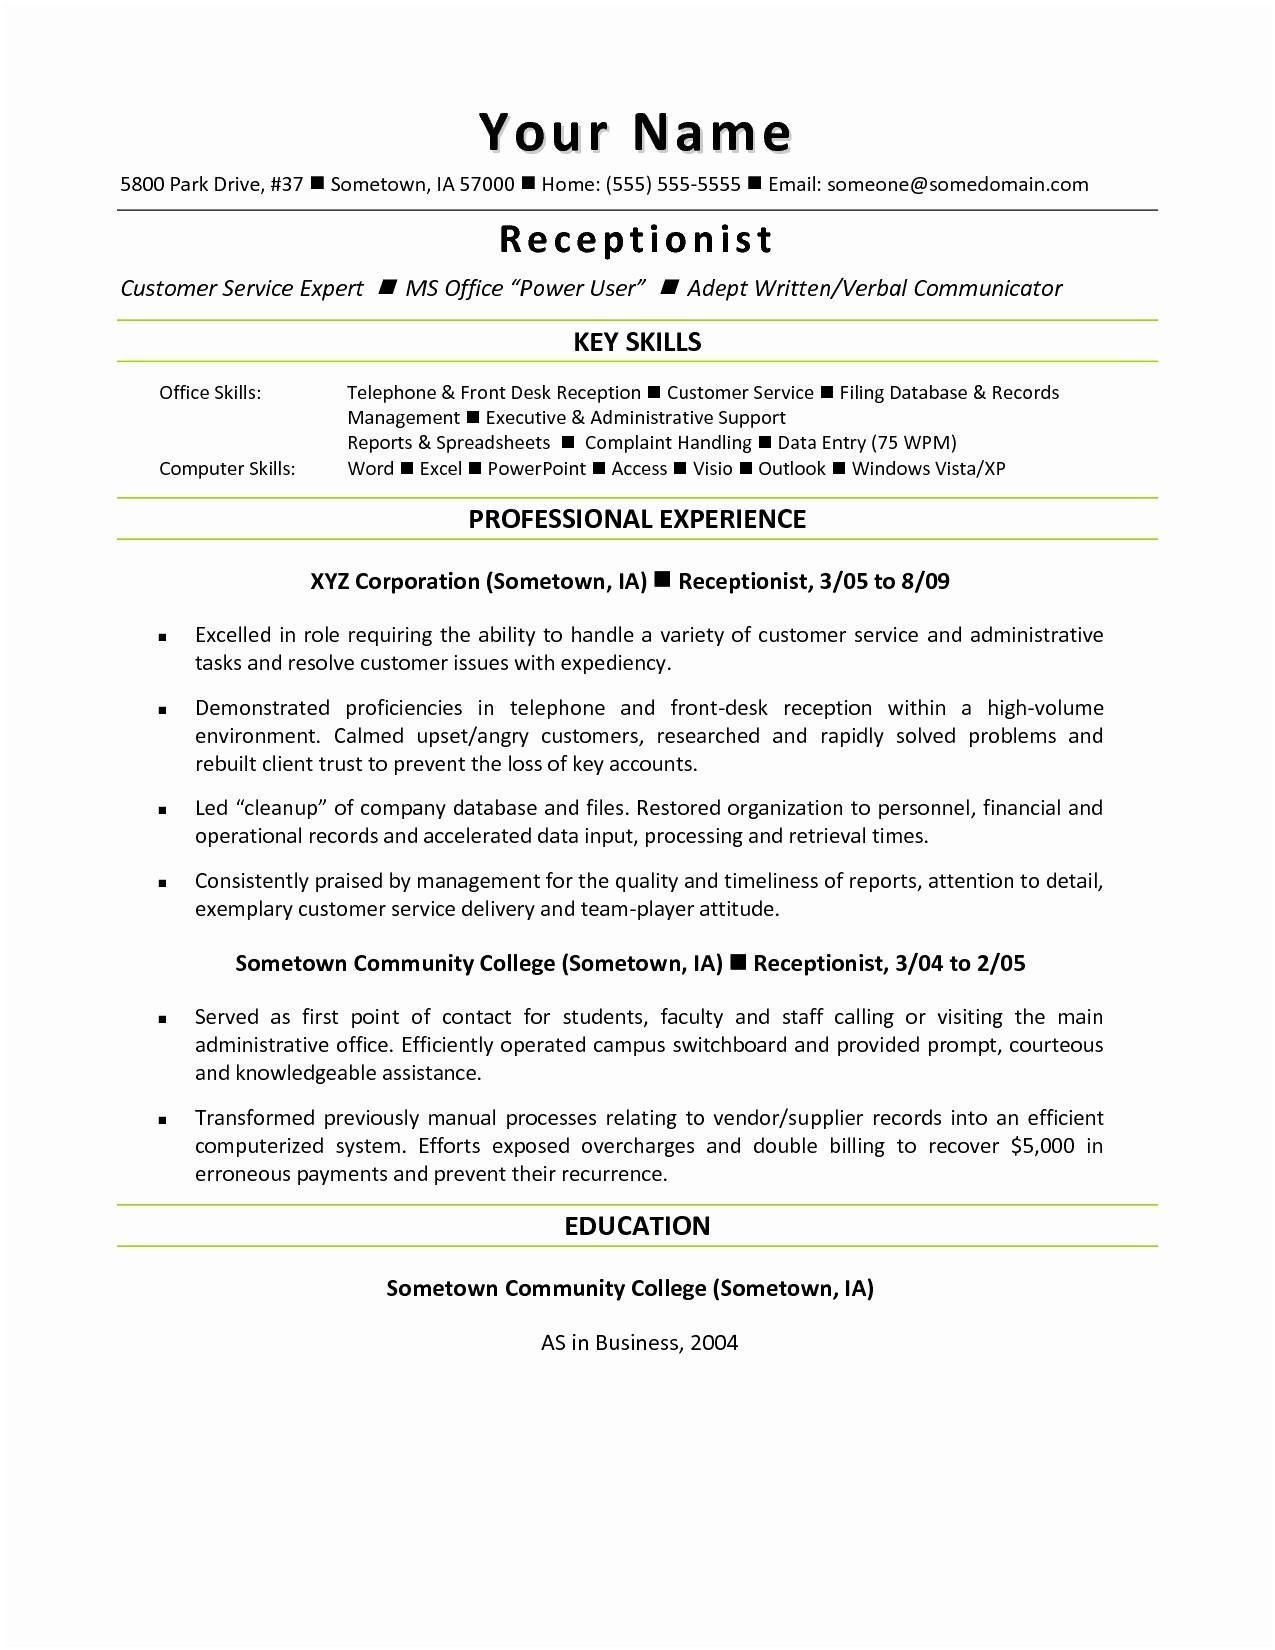 Banquet Server Job Description for Resume - 18 Banquet Server Job Description for Resume